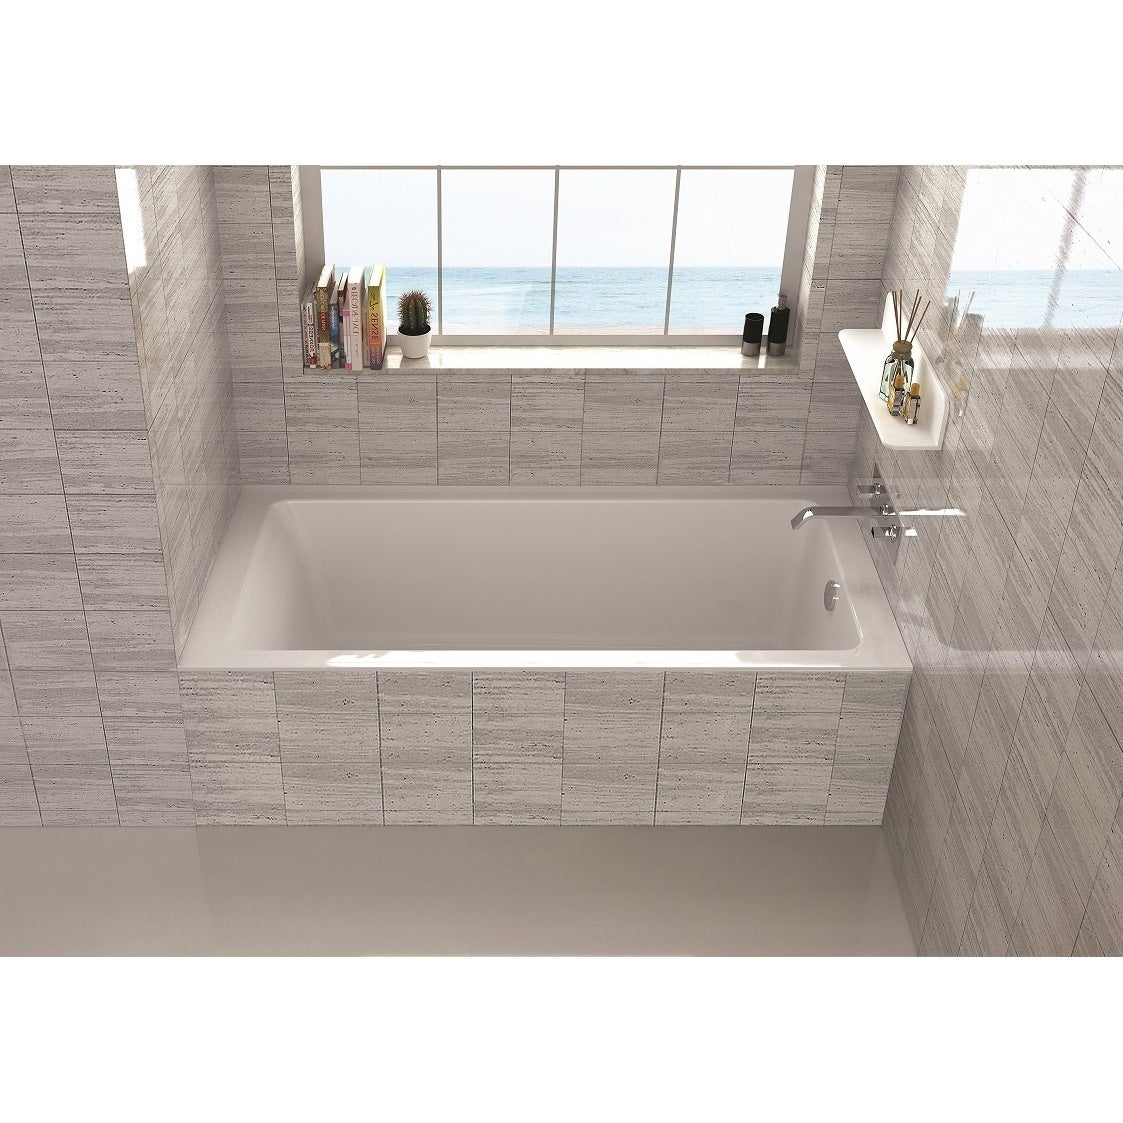 Fine Fixtures Alcove Bathtub With Right Side Fixed Tile Flange (32 ...